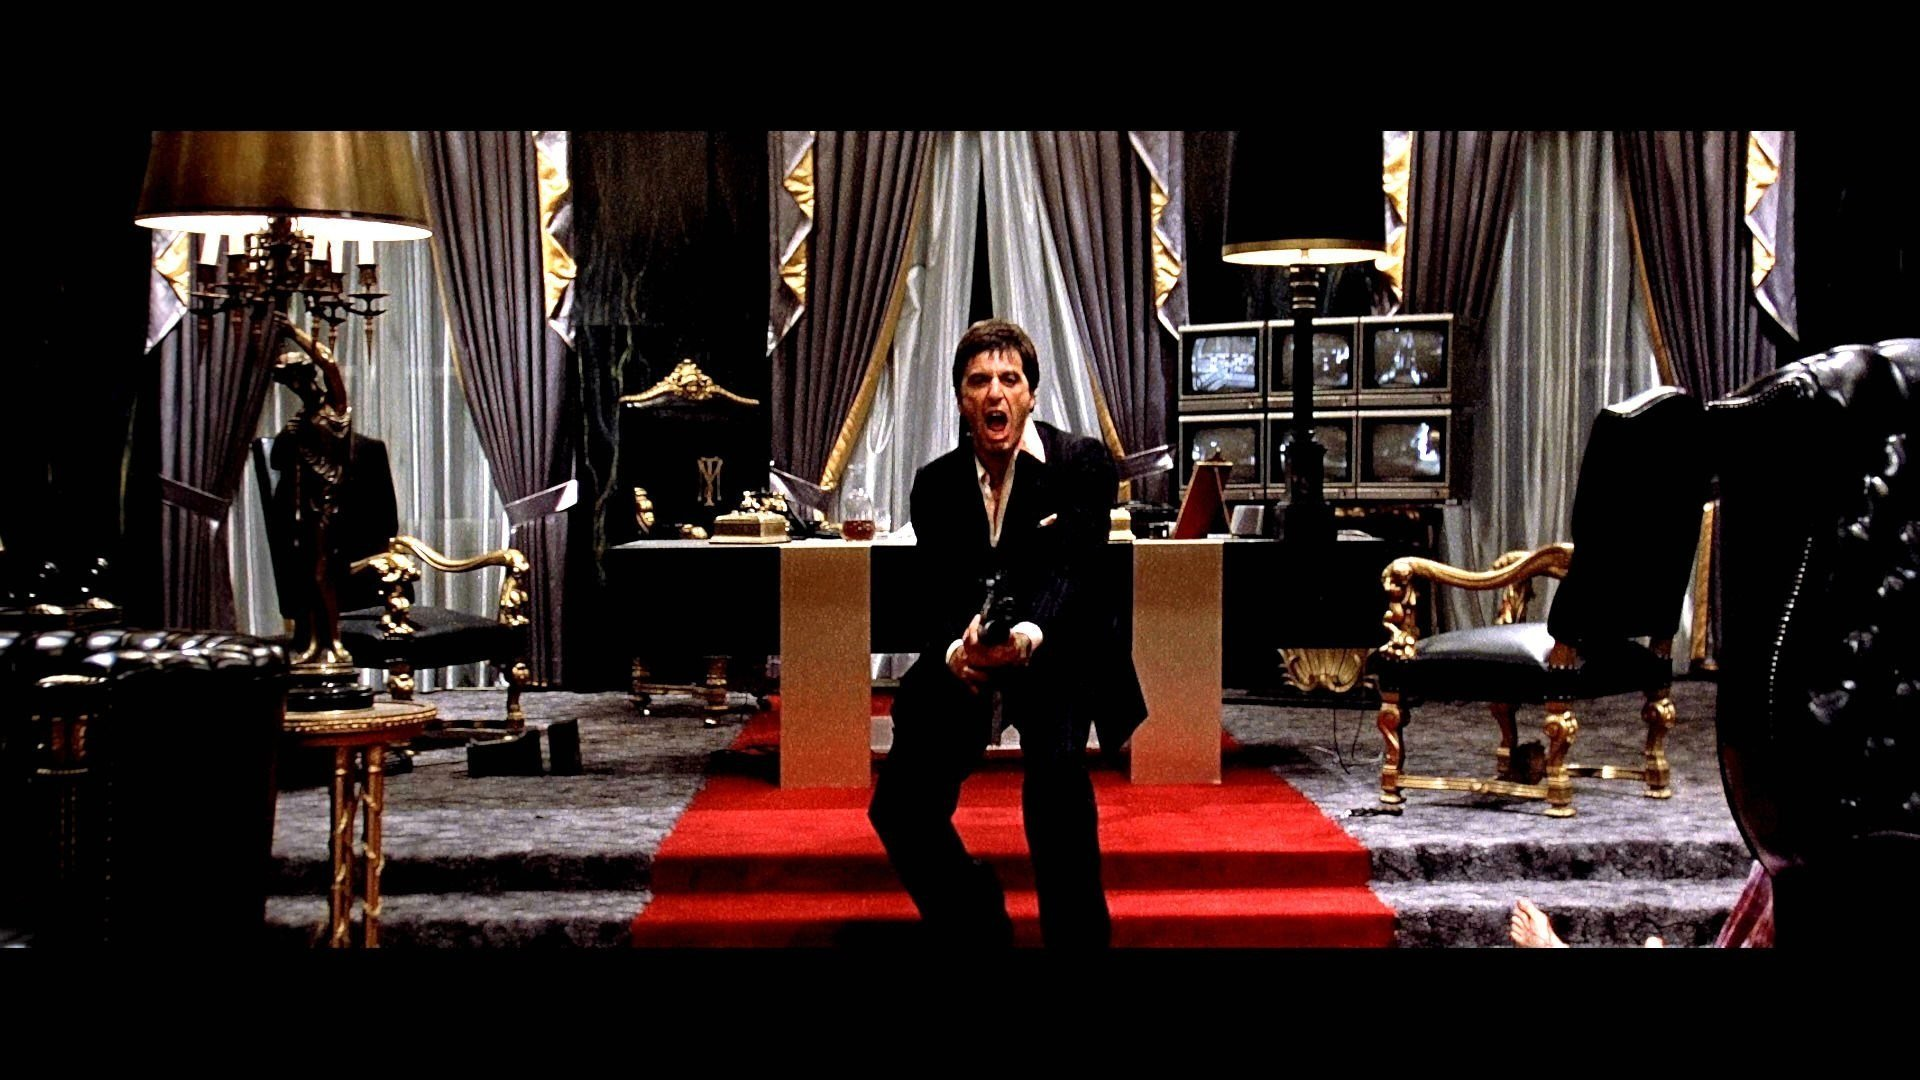 Best Scarface Mural Wallpaper ·① Wallpapertag With Pictures